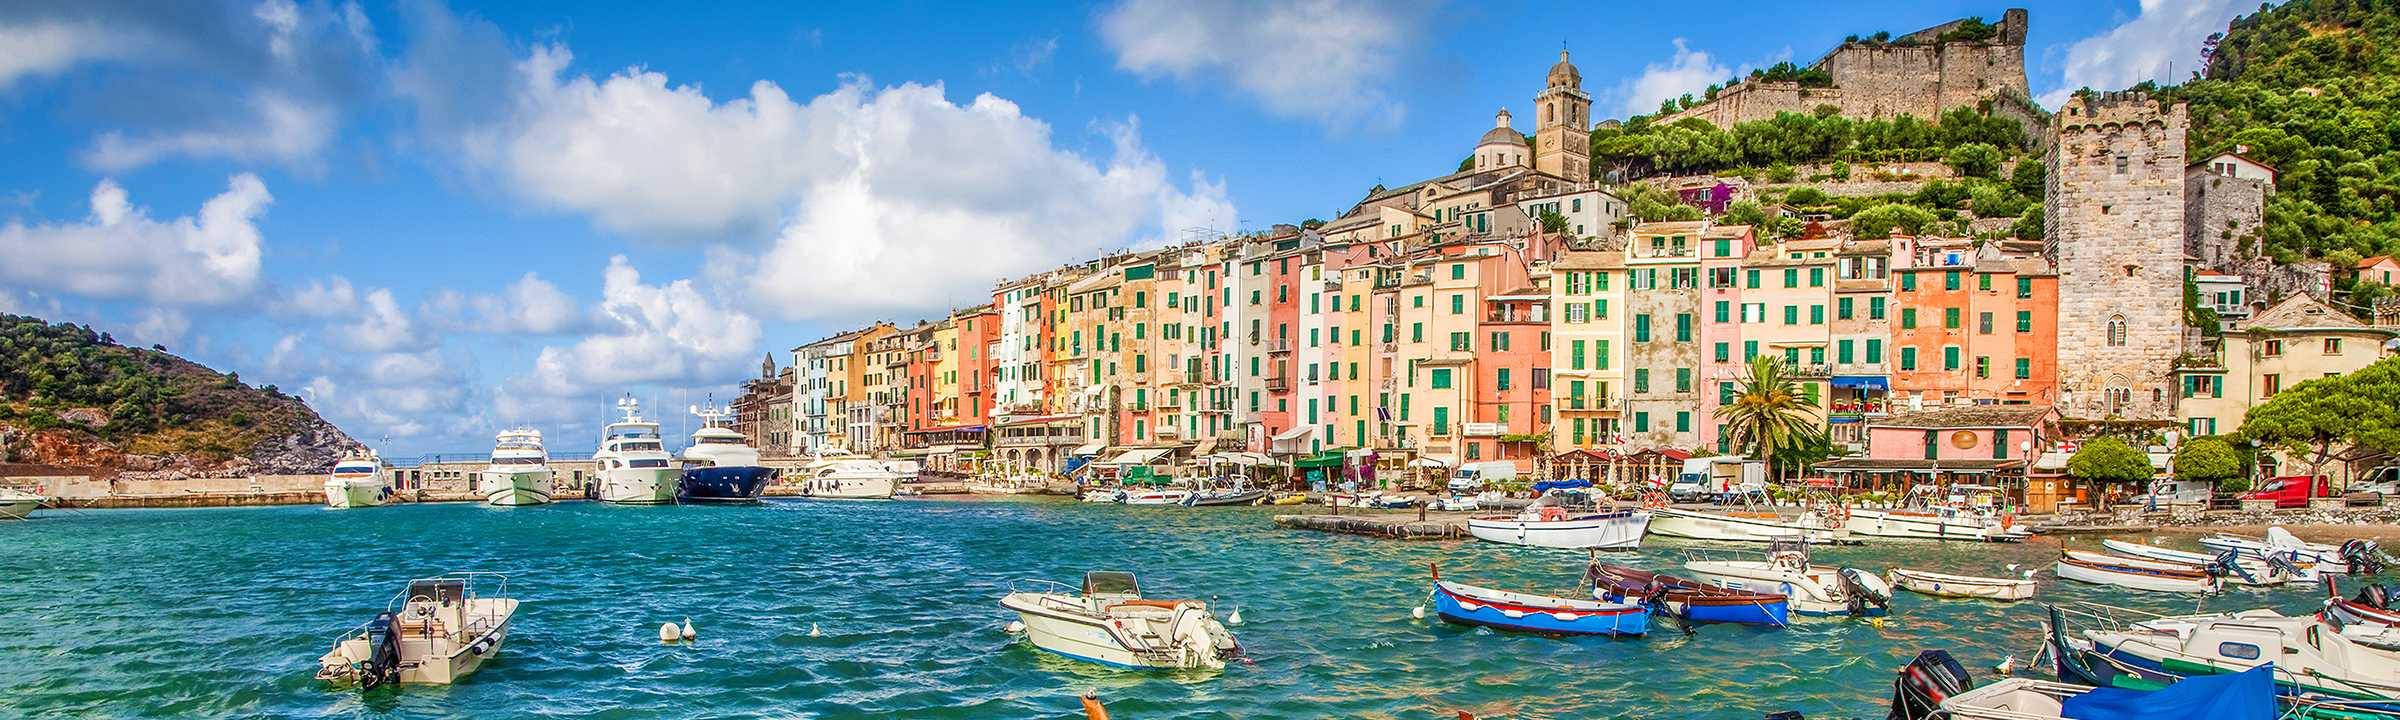 Best of Italy with the Italian Riviera